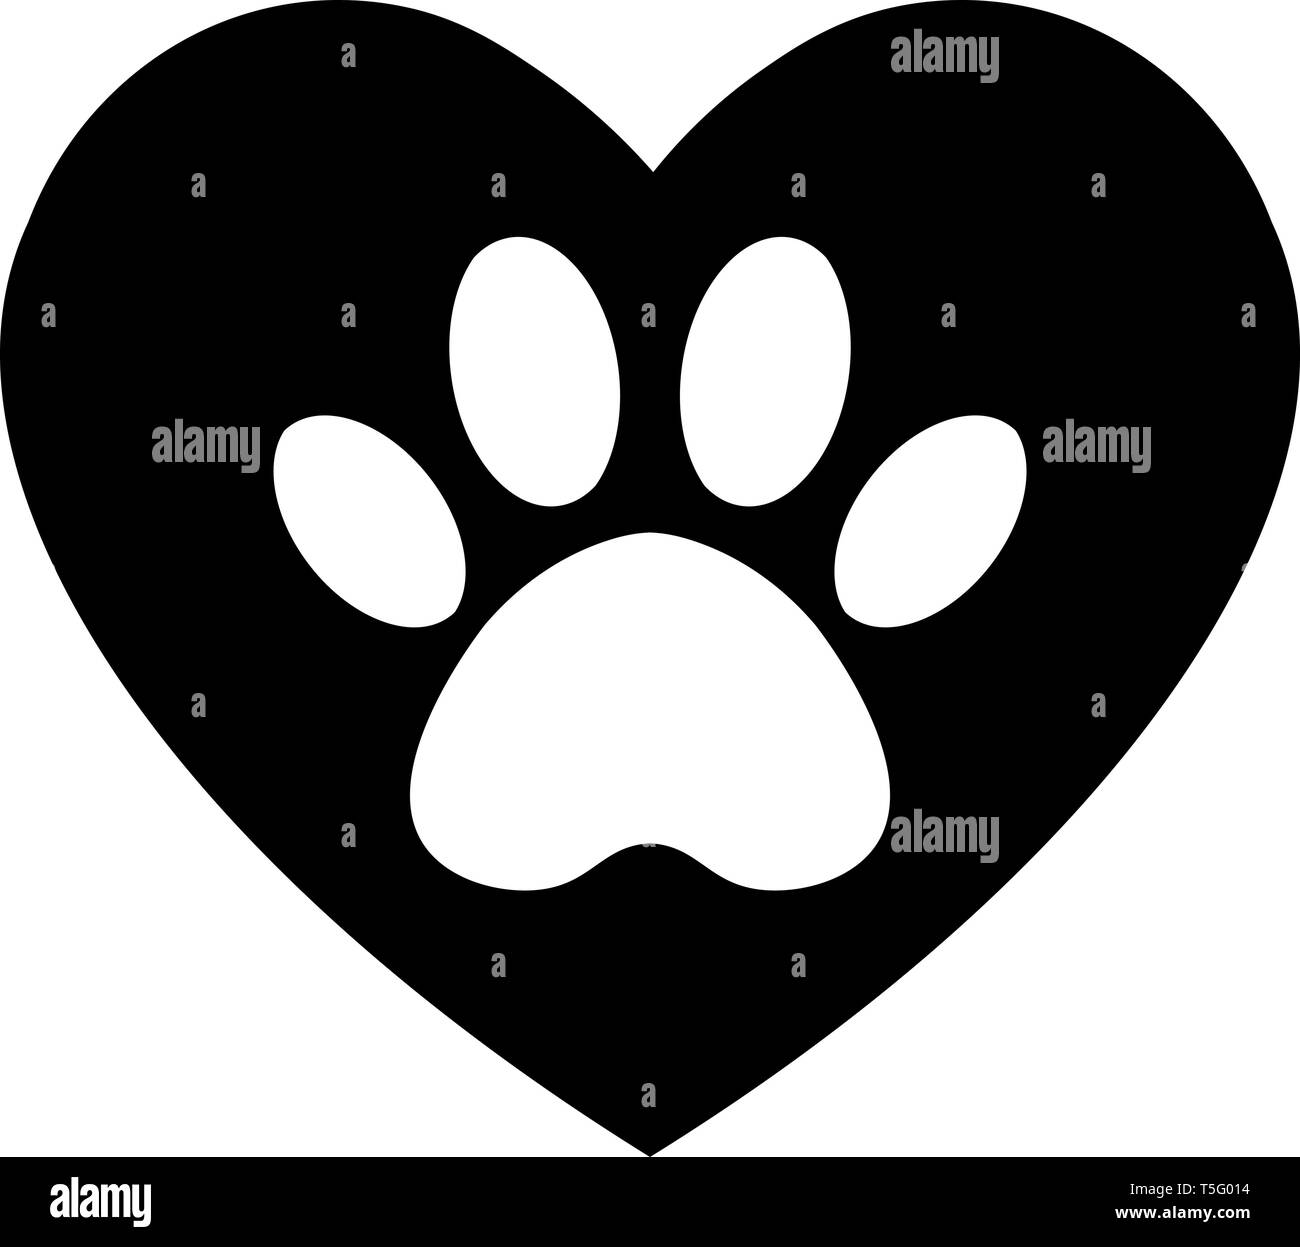 cat and dog paw print inside heart  The dog's track in the heart